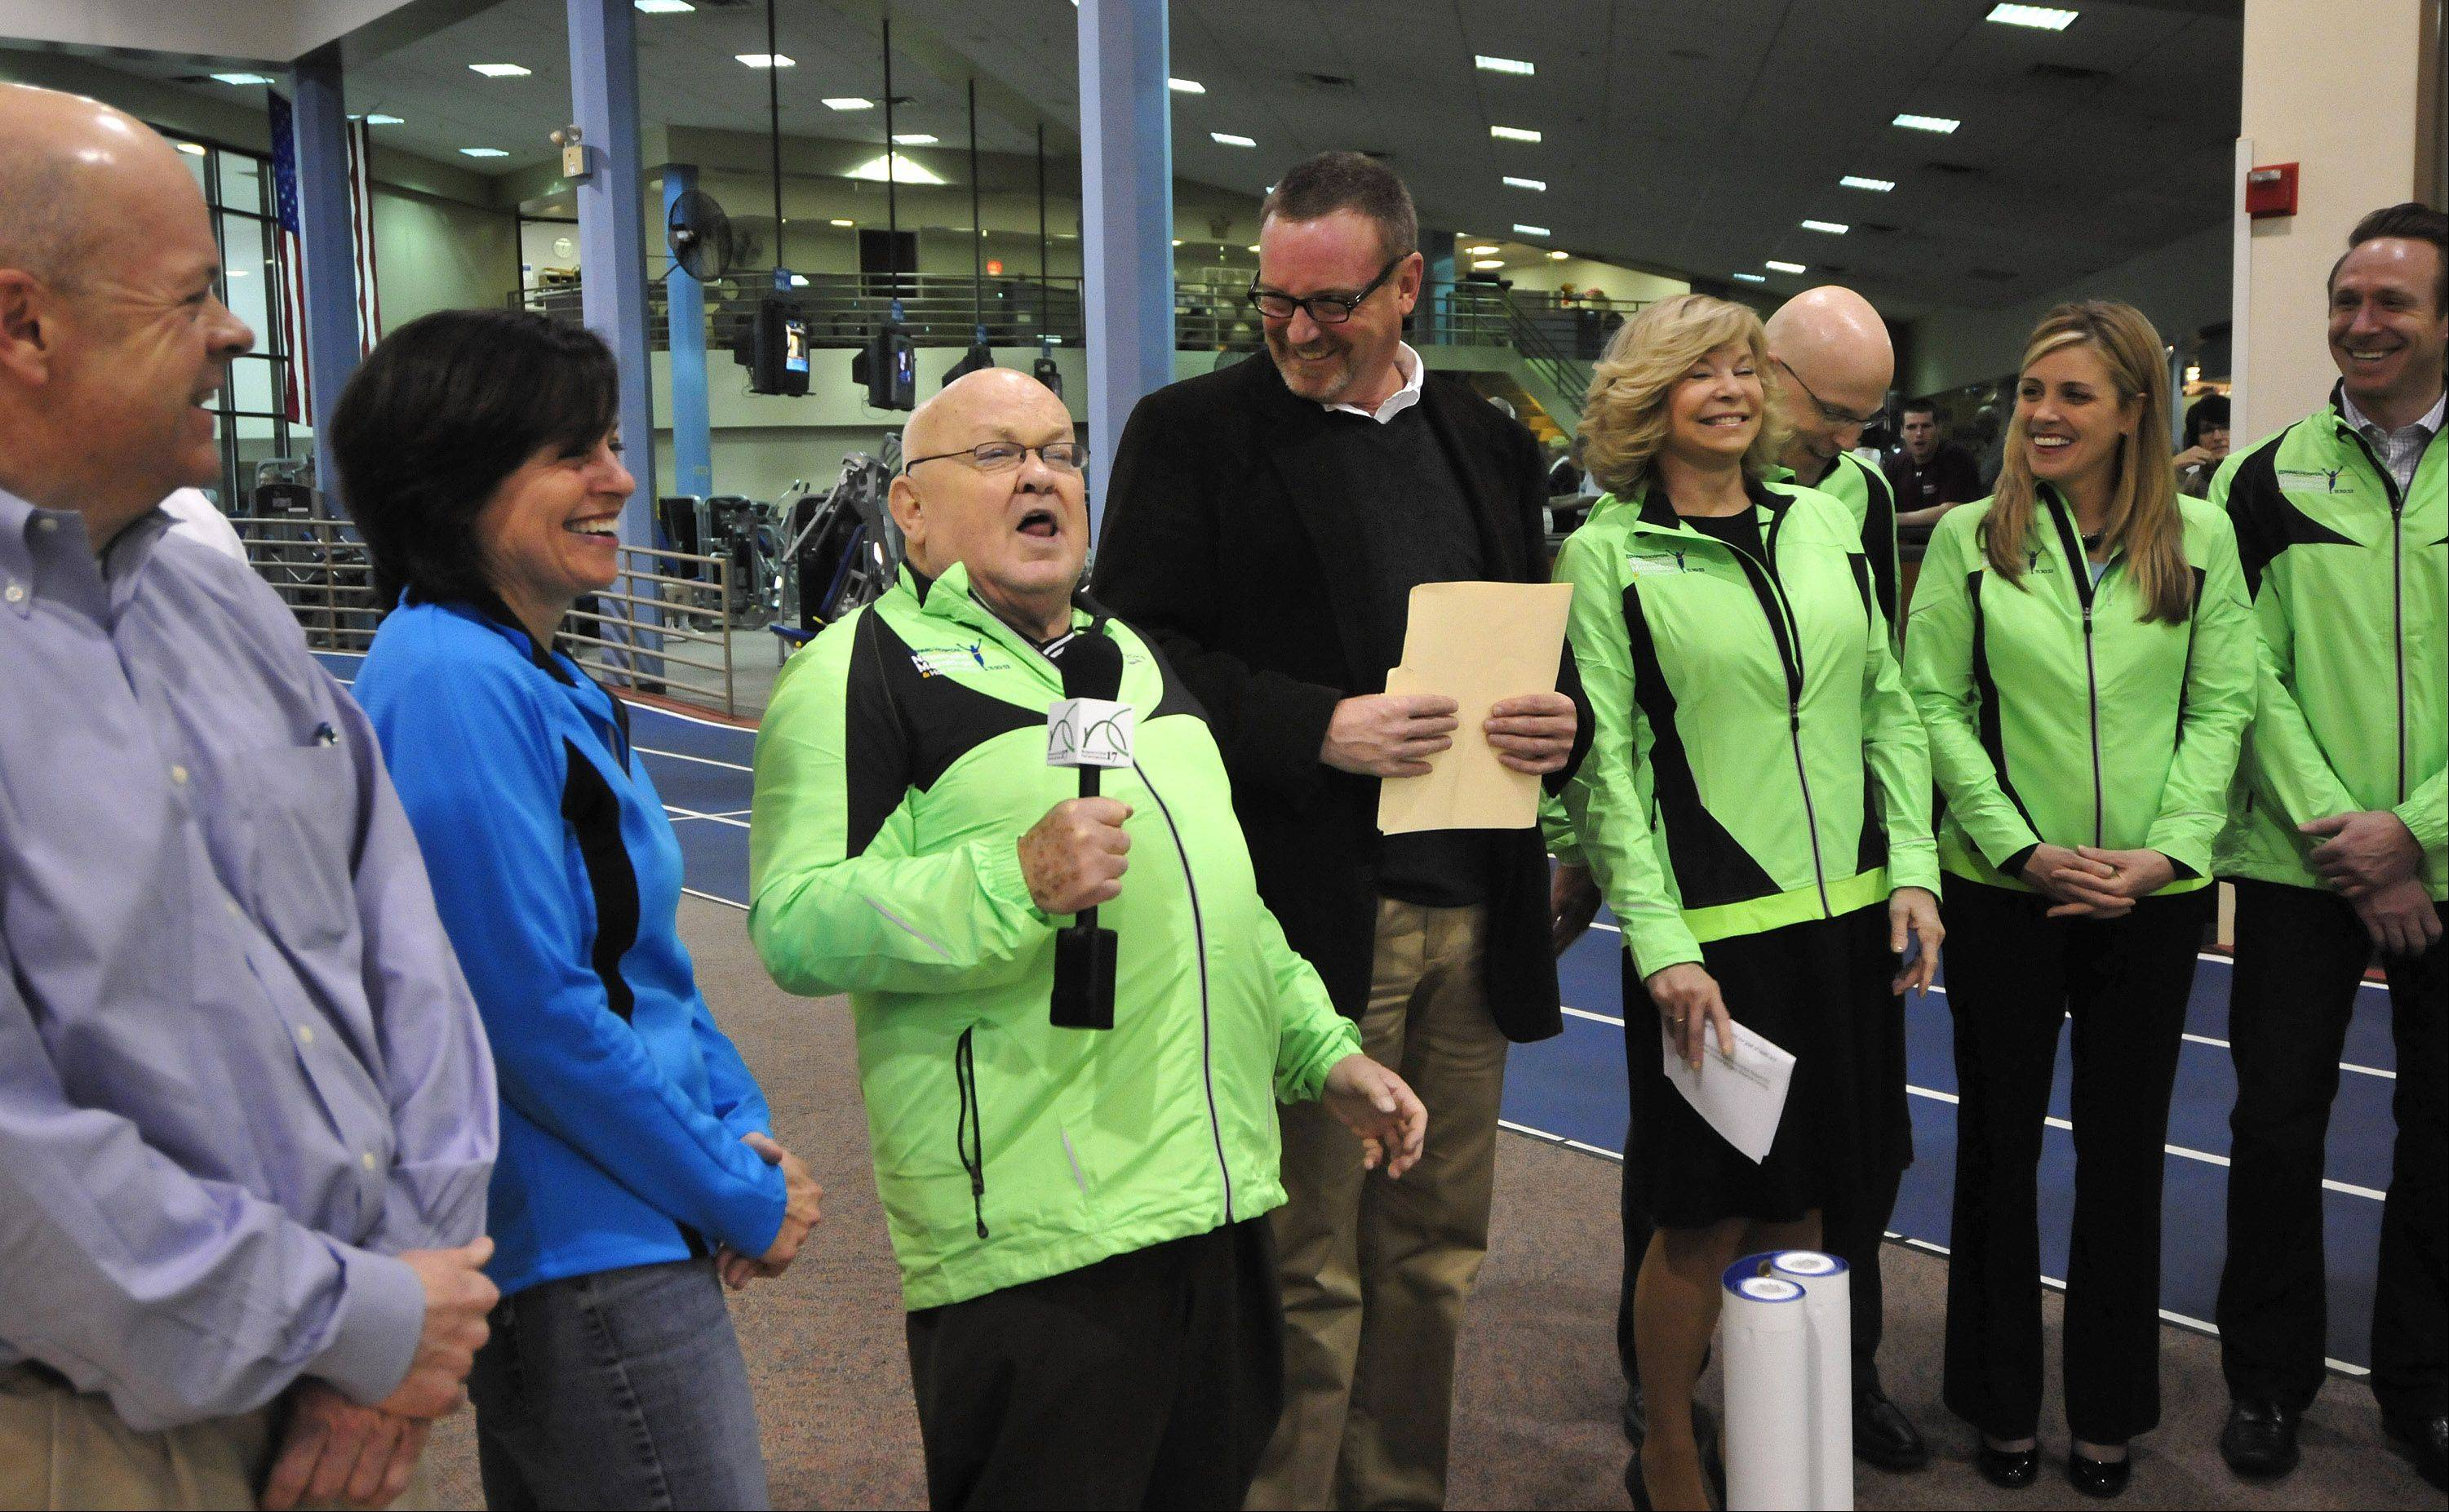 Officials from Edward Hospital in Naperville were joined by Mayor George Pradel, third from left, as he fired up the crowd Monday to unveil the starting banner for Naperville's inaugural marathon this fall. The event was held on the running track at the Edward Health & Fitness Center, next to the hospital.